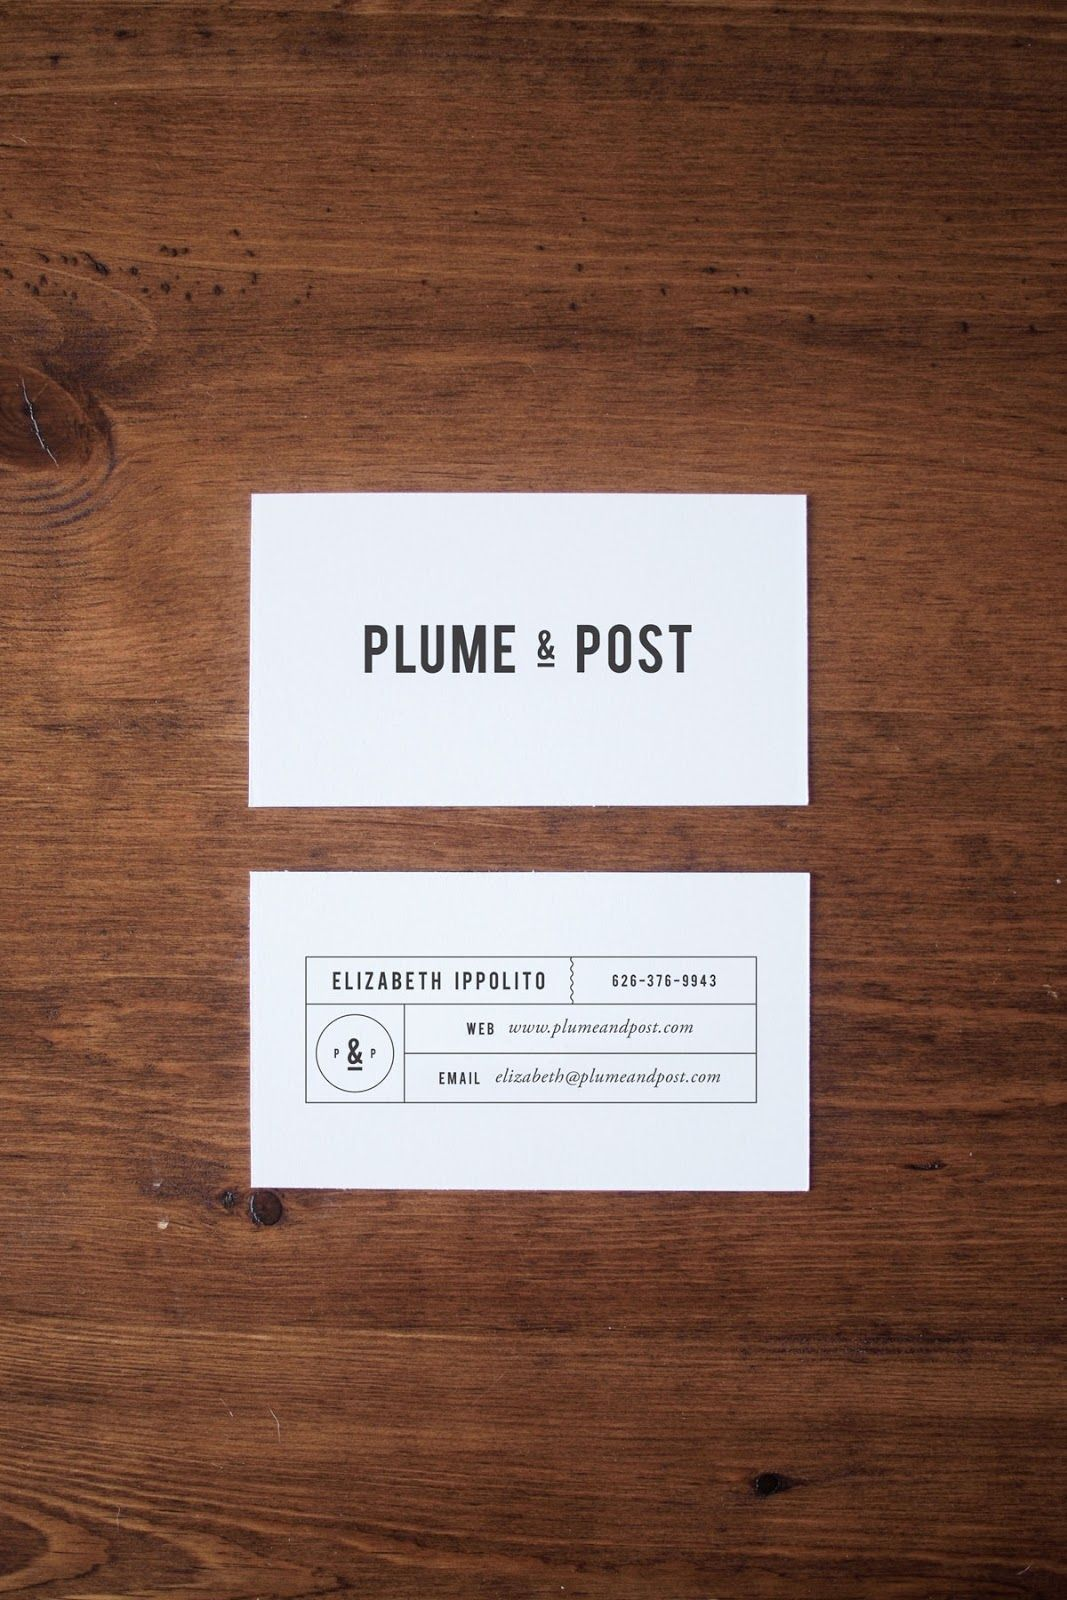 Plume & Post | Business cards, Pear and Business